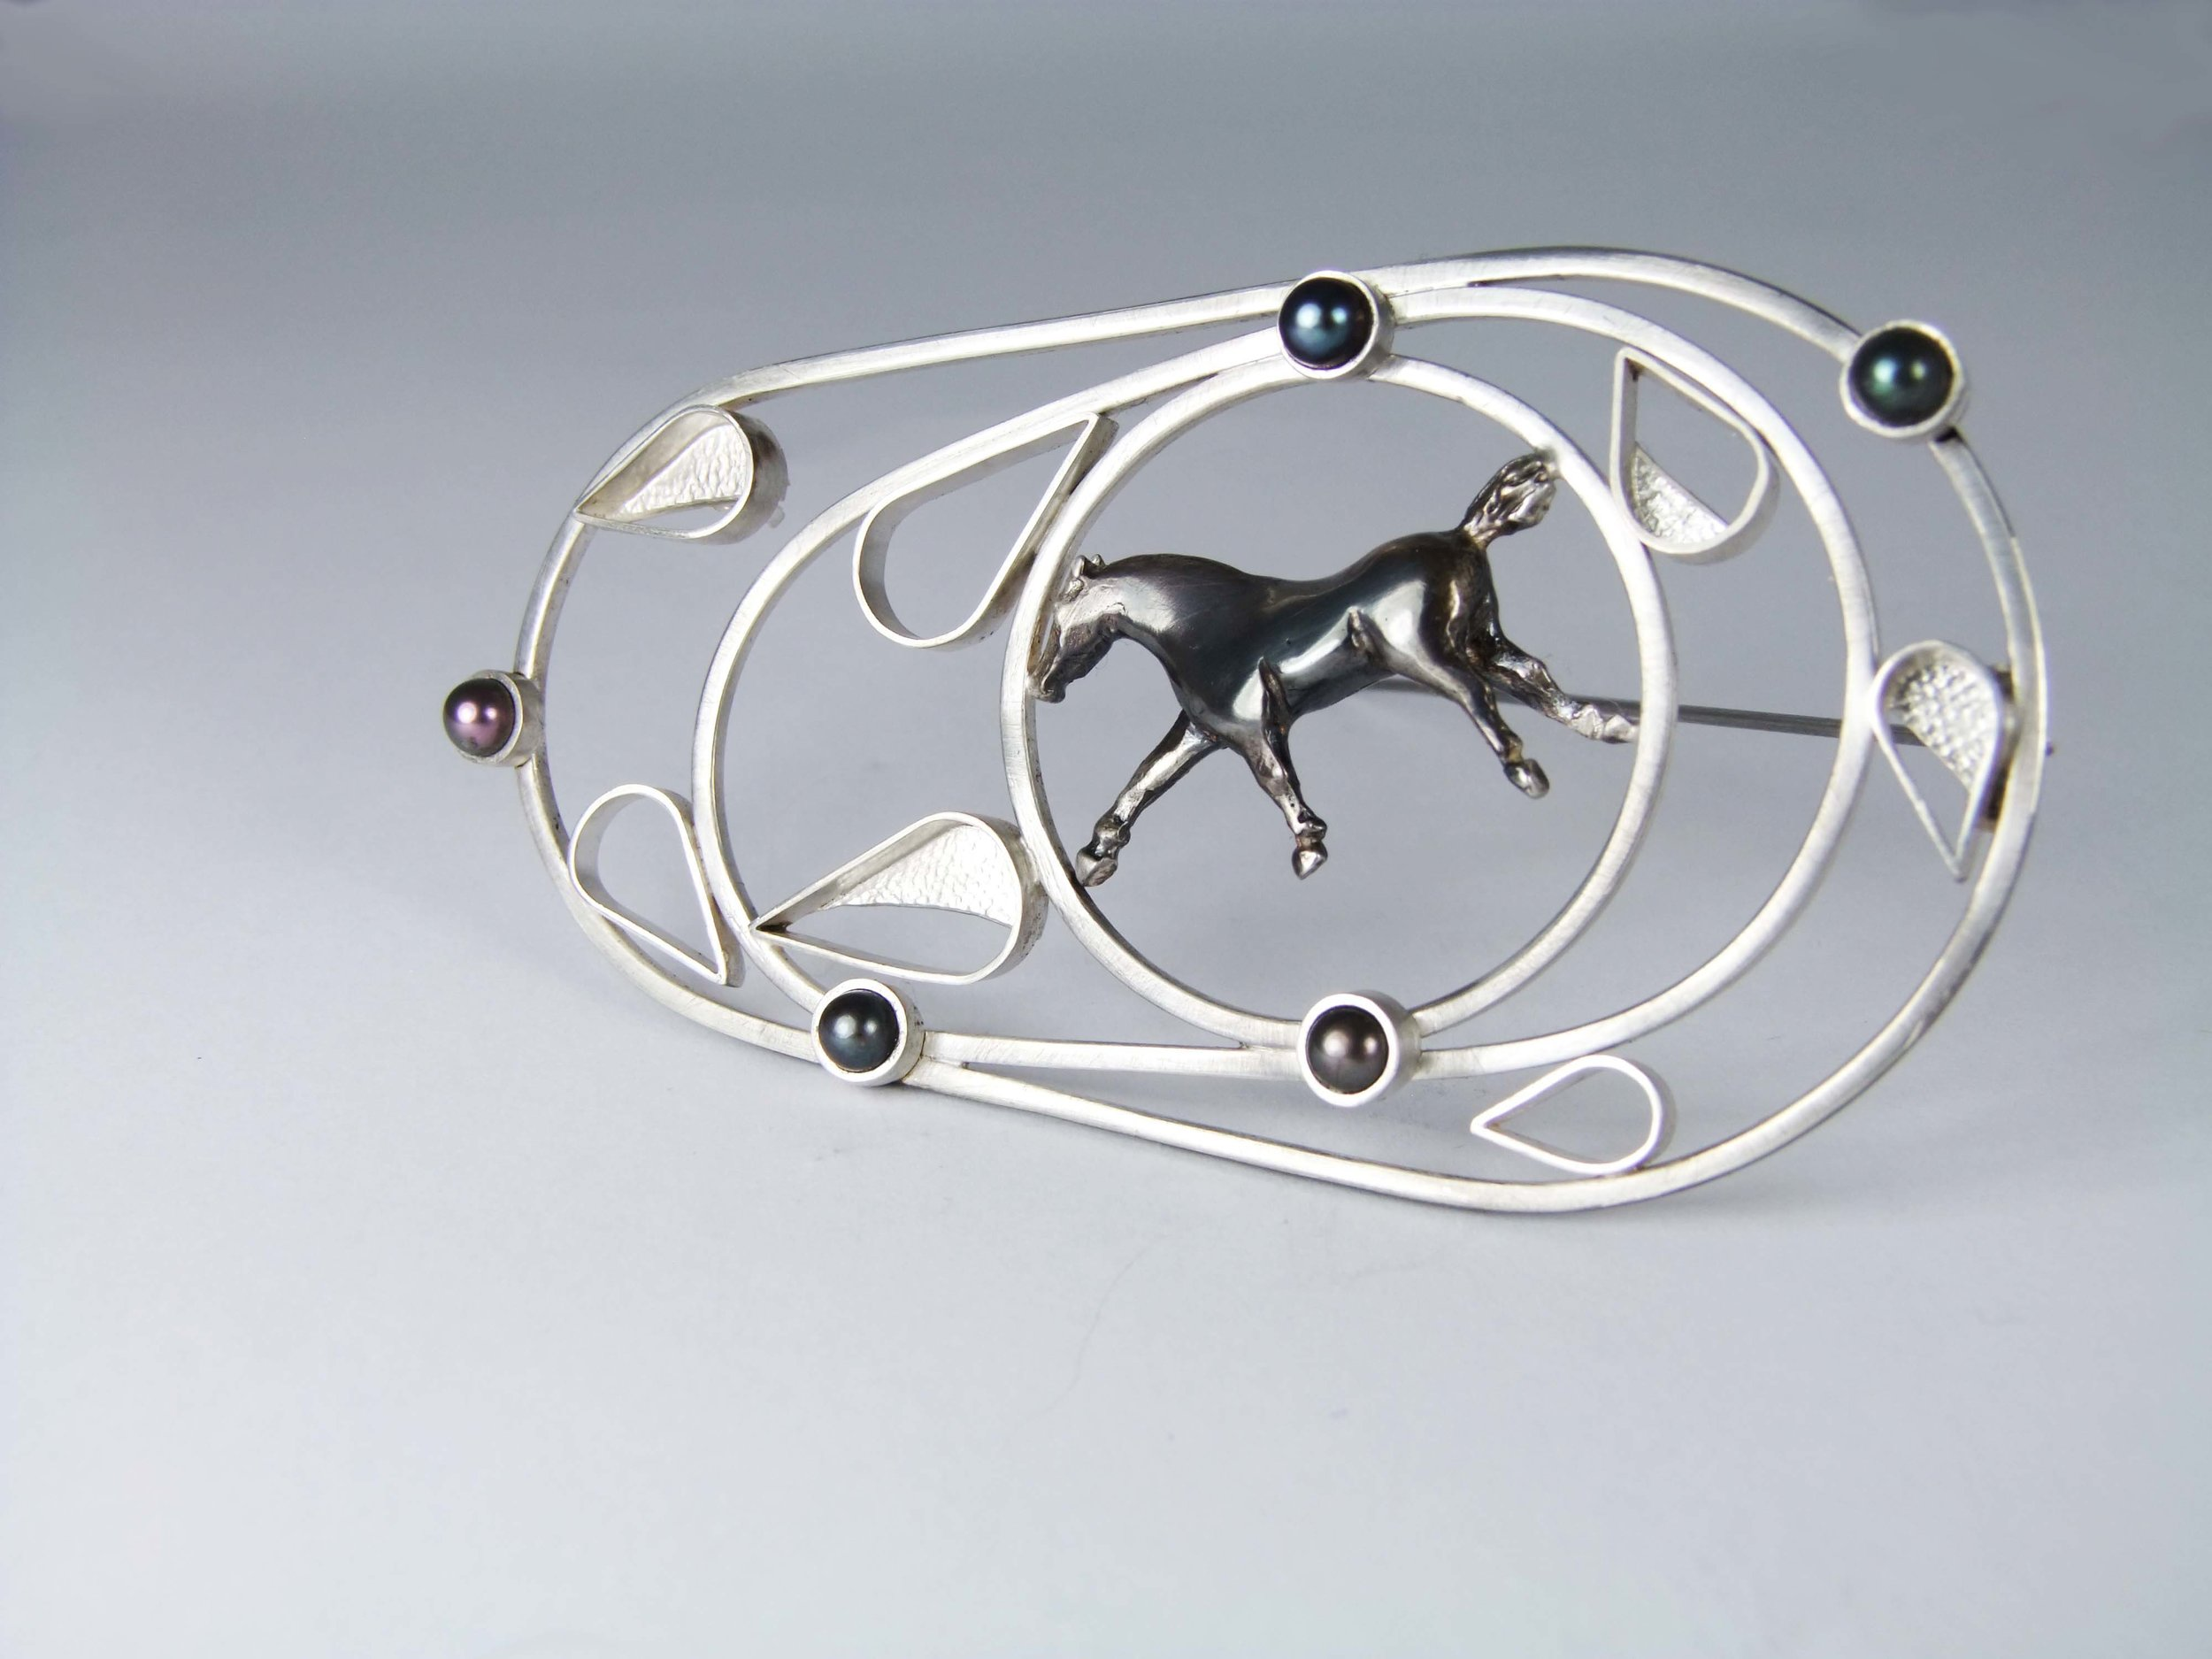 Rachel ELizabeth Wood Bespoke Horse racing Brooch made for Royal Ascot races. Horse galloping brooch pin with pearls